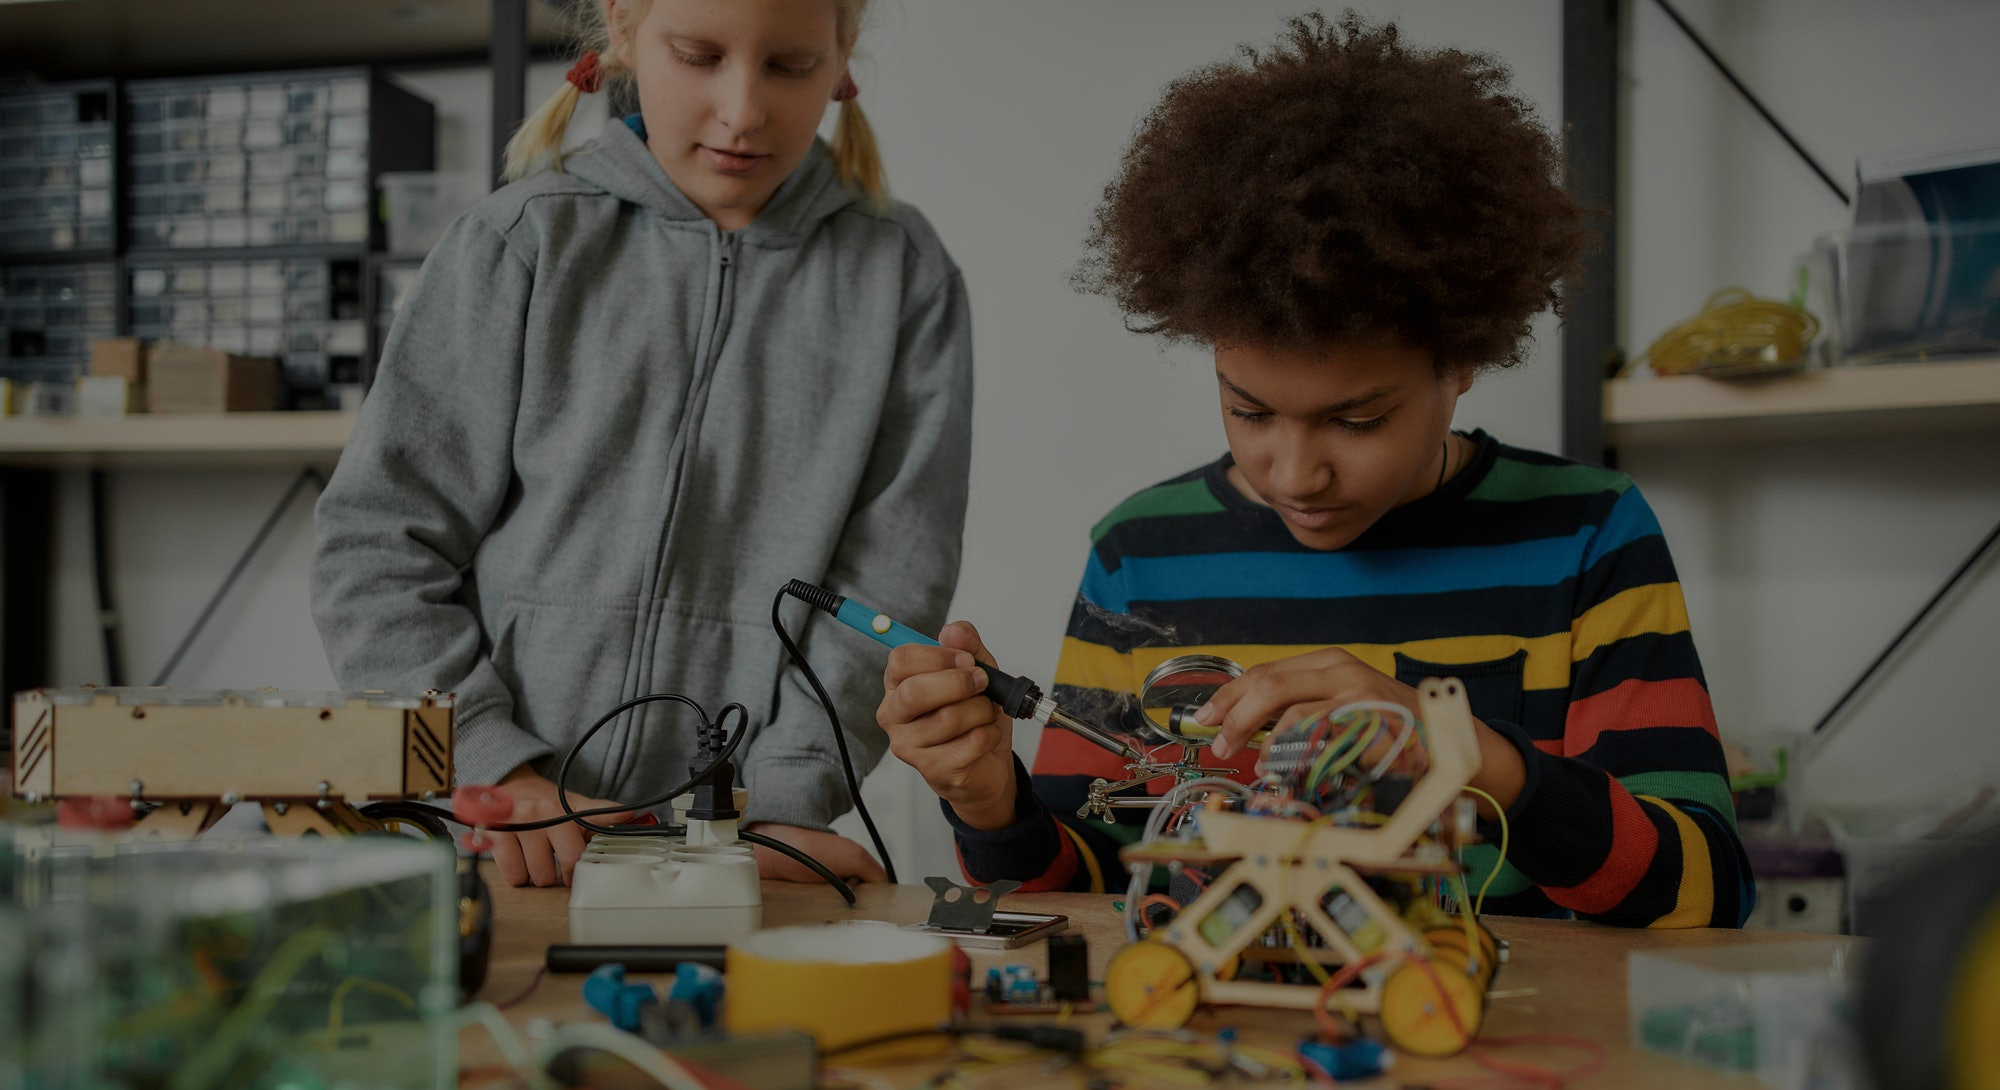 Young engineer using soldering iron to join chips and wires. His friend looking at the process. Robotics and software engineering for elementary students. Tinkering, educational activities concept.